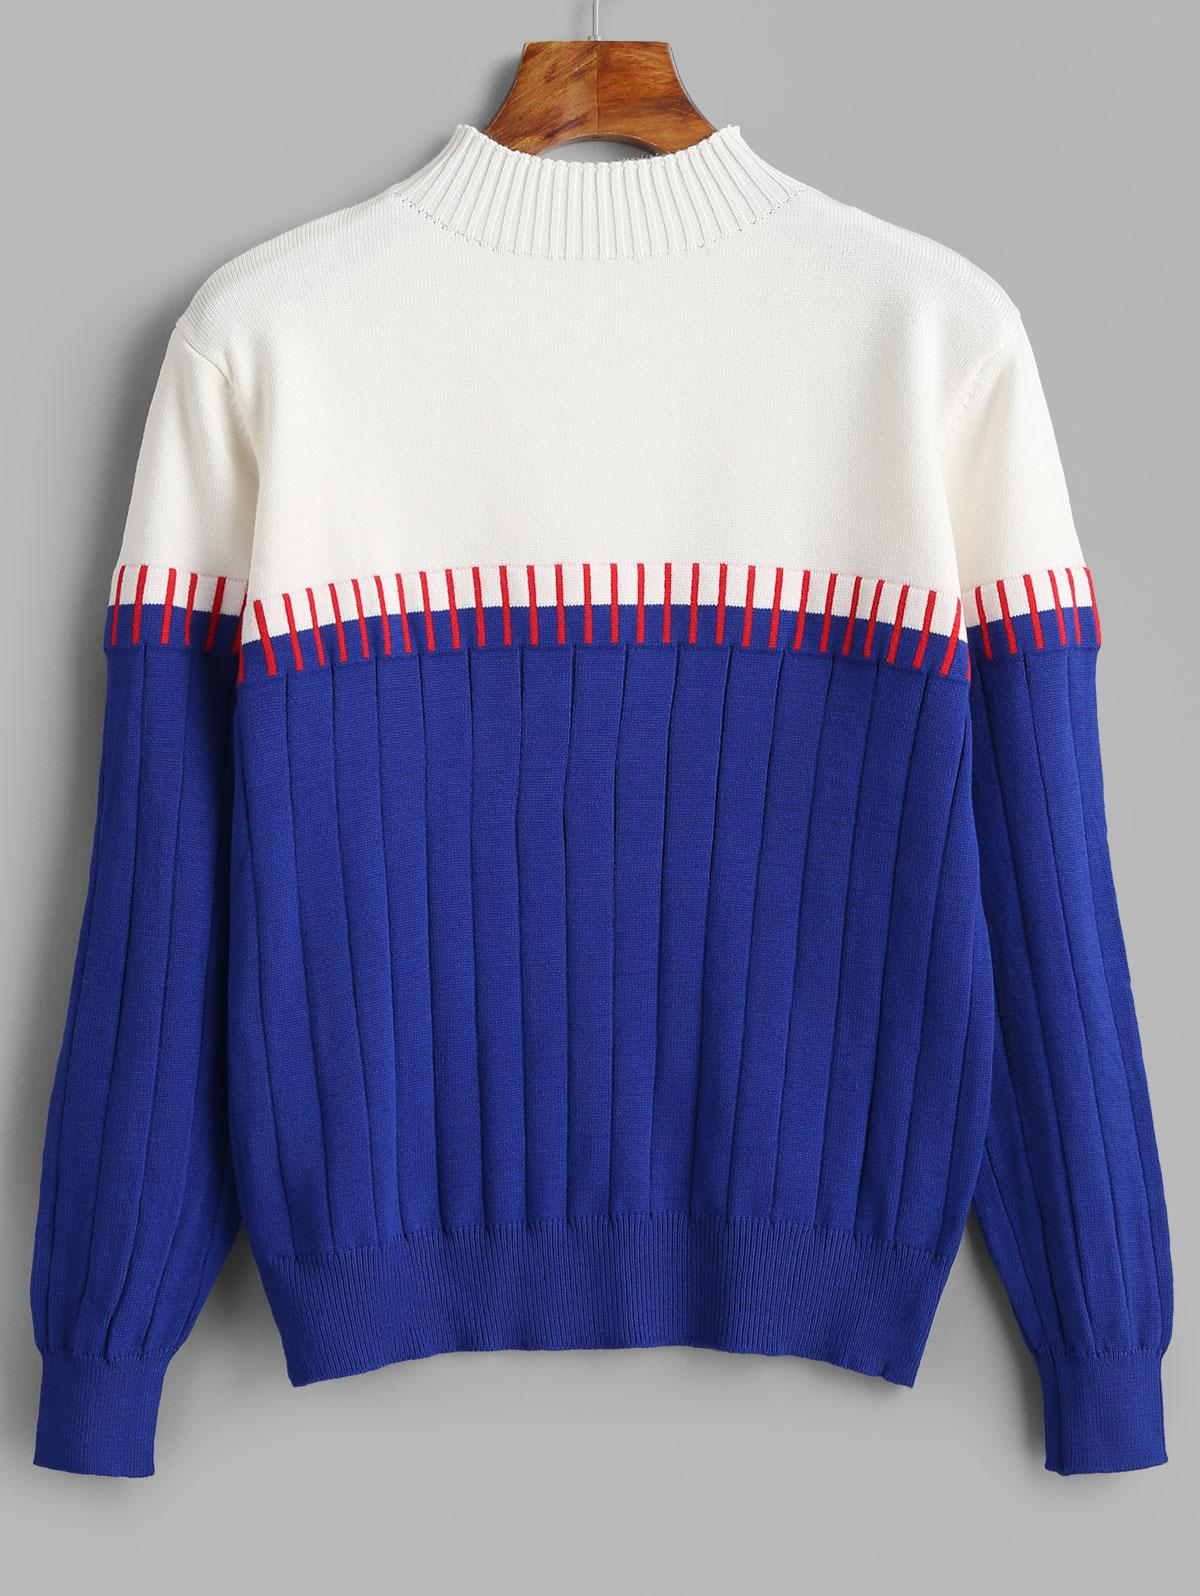 Two Tone Mock Neck Knitted Sweater